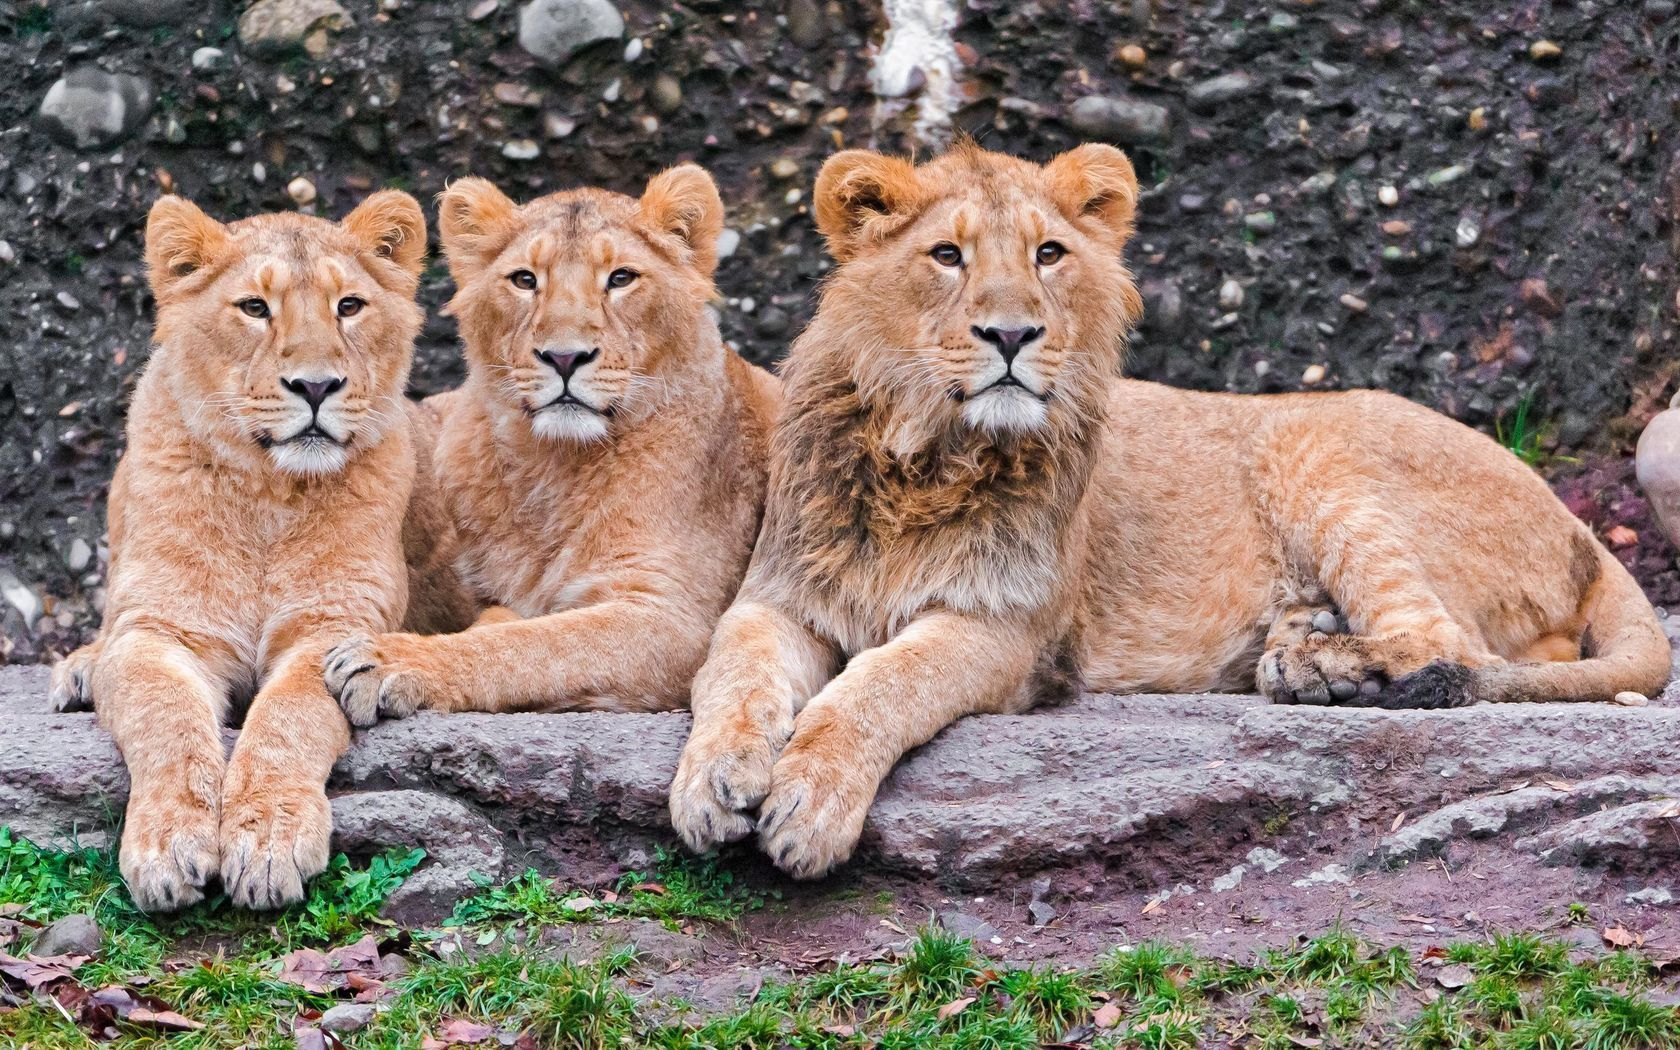 91605 download wallpaper Animals, Predators, To Lie Down, Lie, Family, Lions screensavers and pictures for free